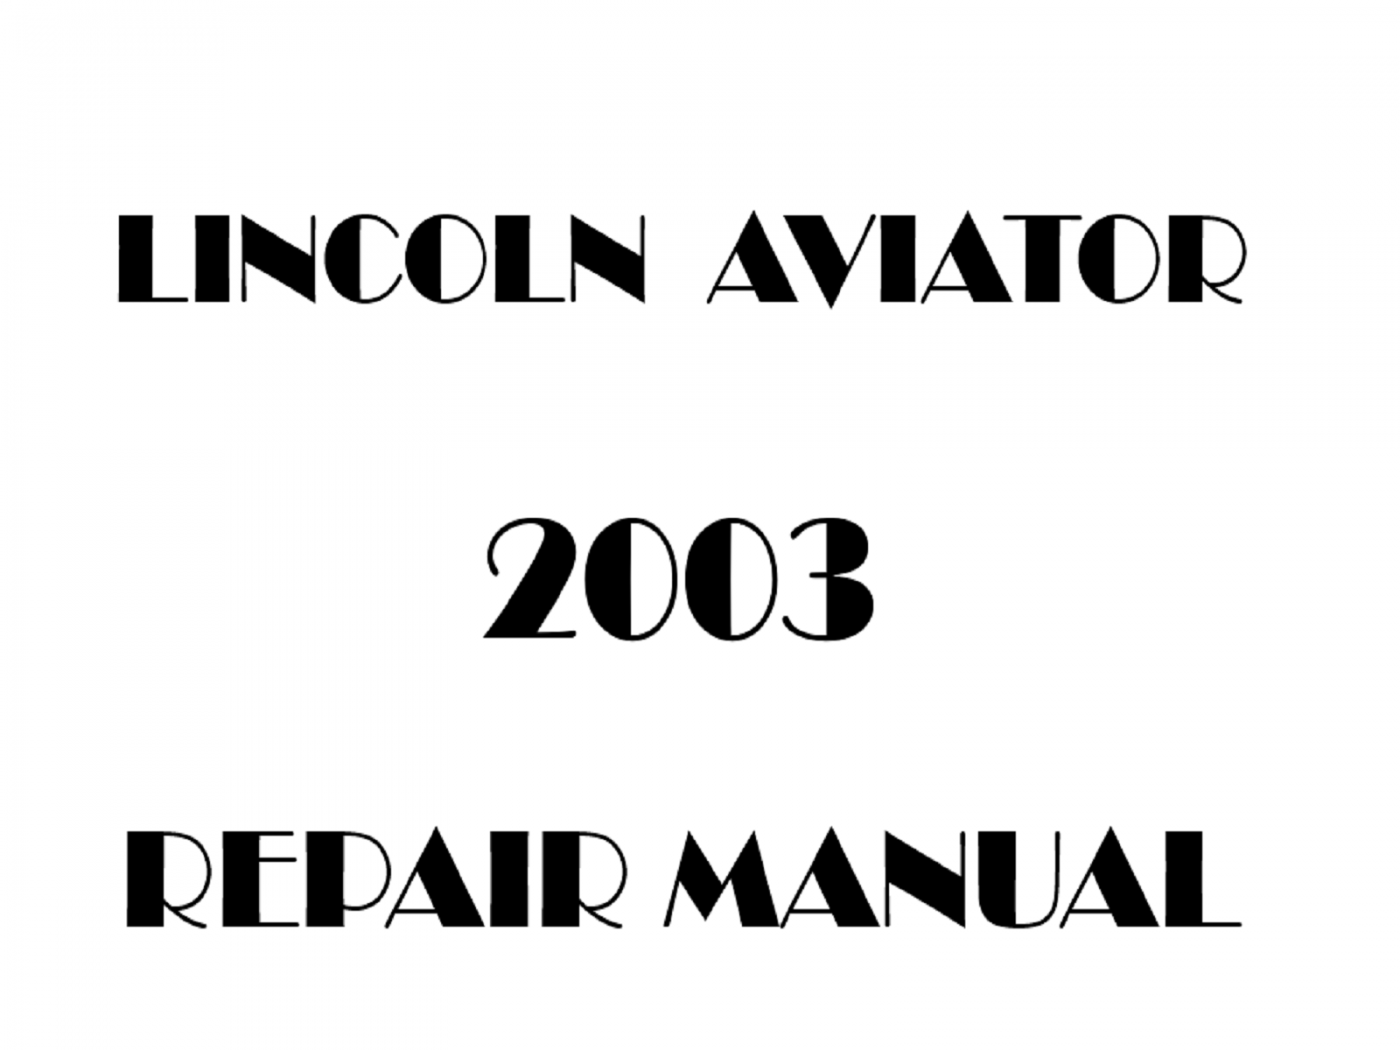 2003 Lincoln Aviator repair manual